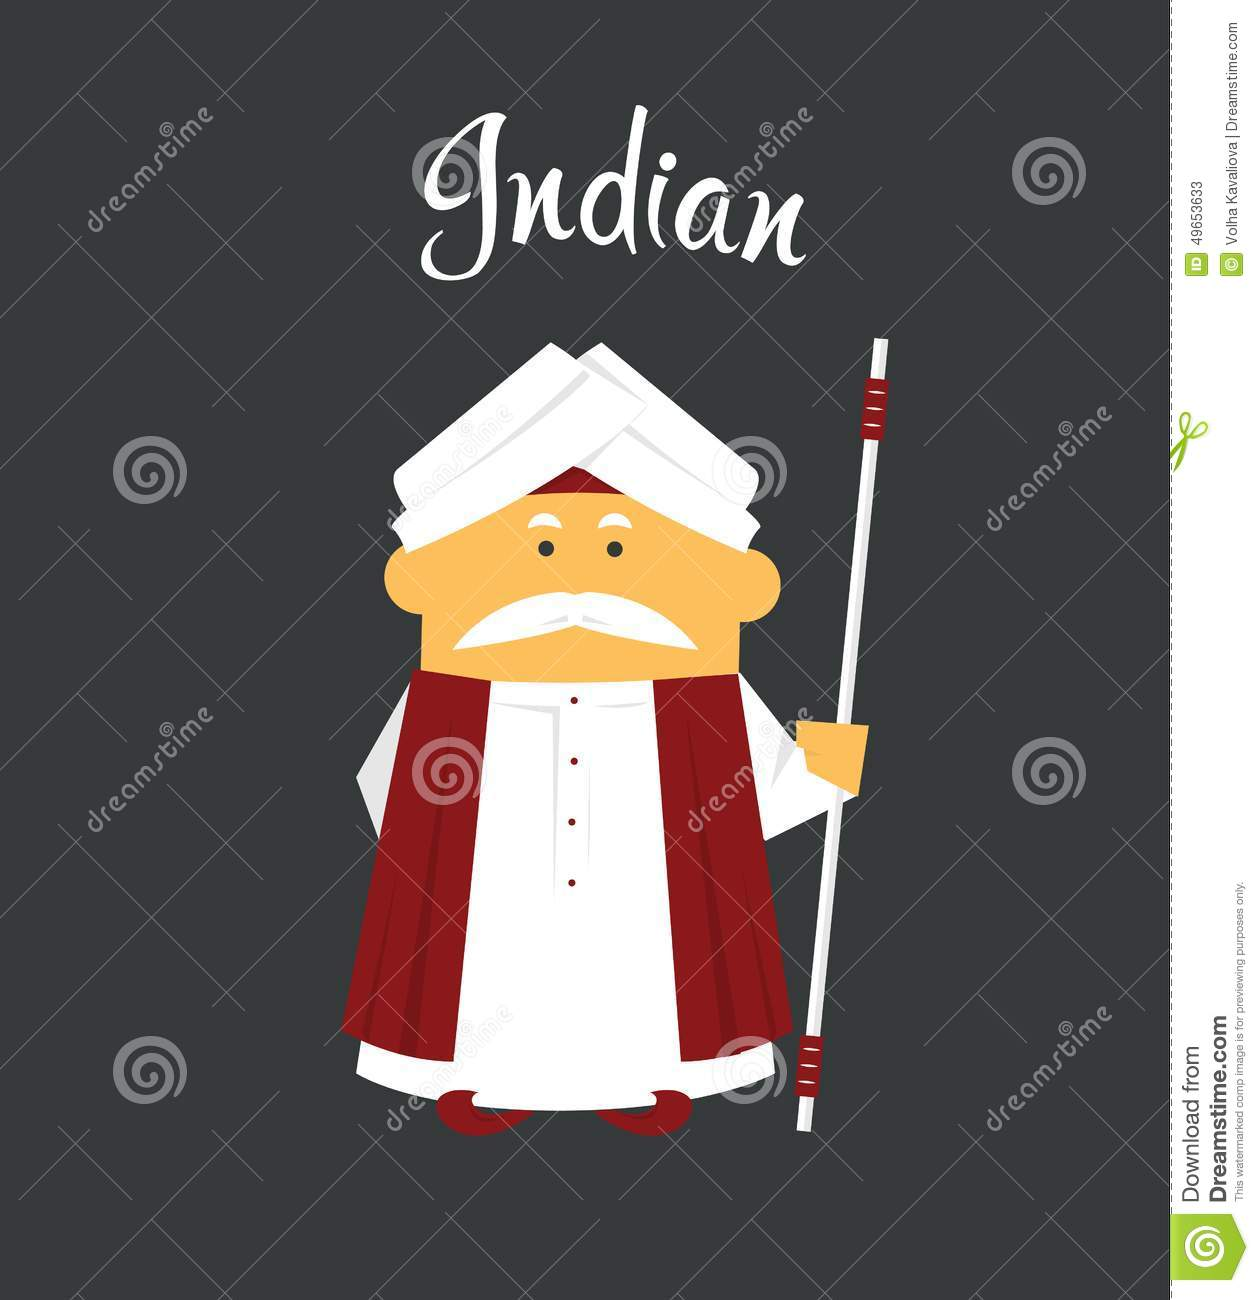 Indian Man Or Cartoon Charachter In Turban With Stock